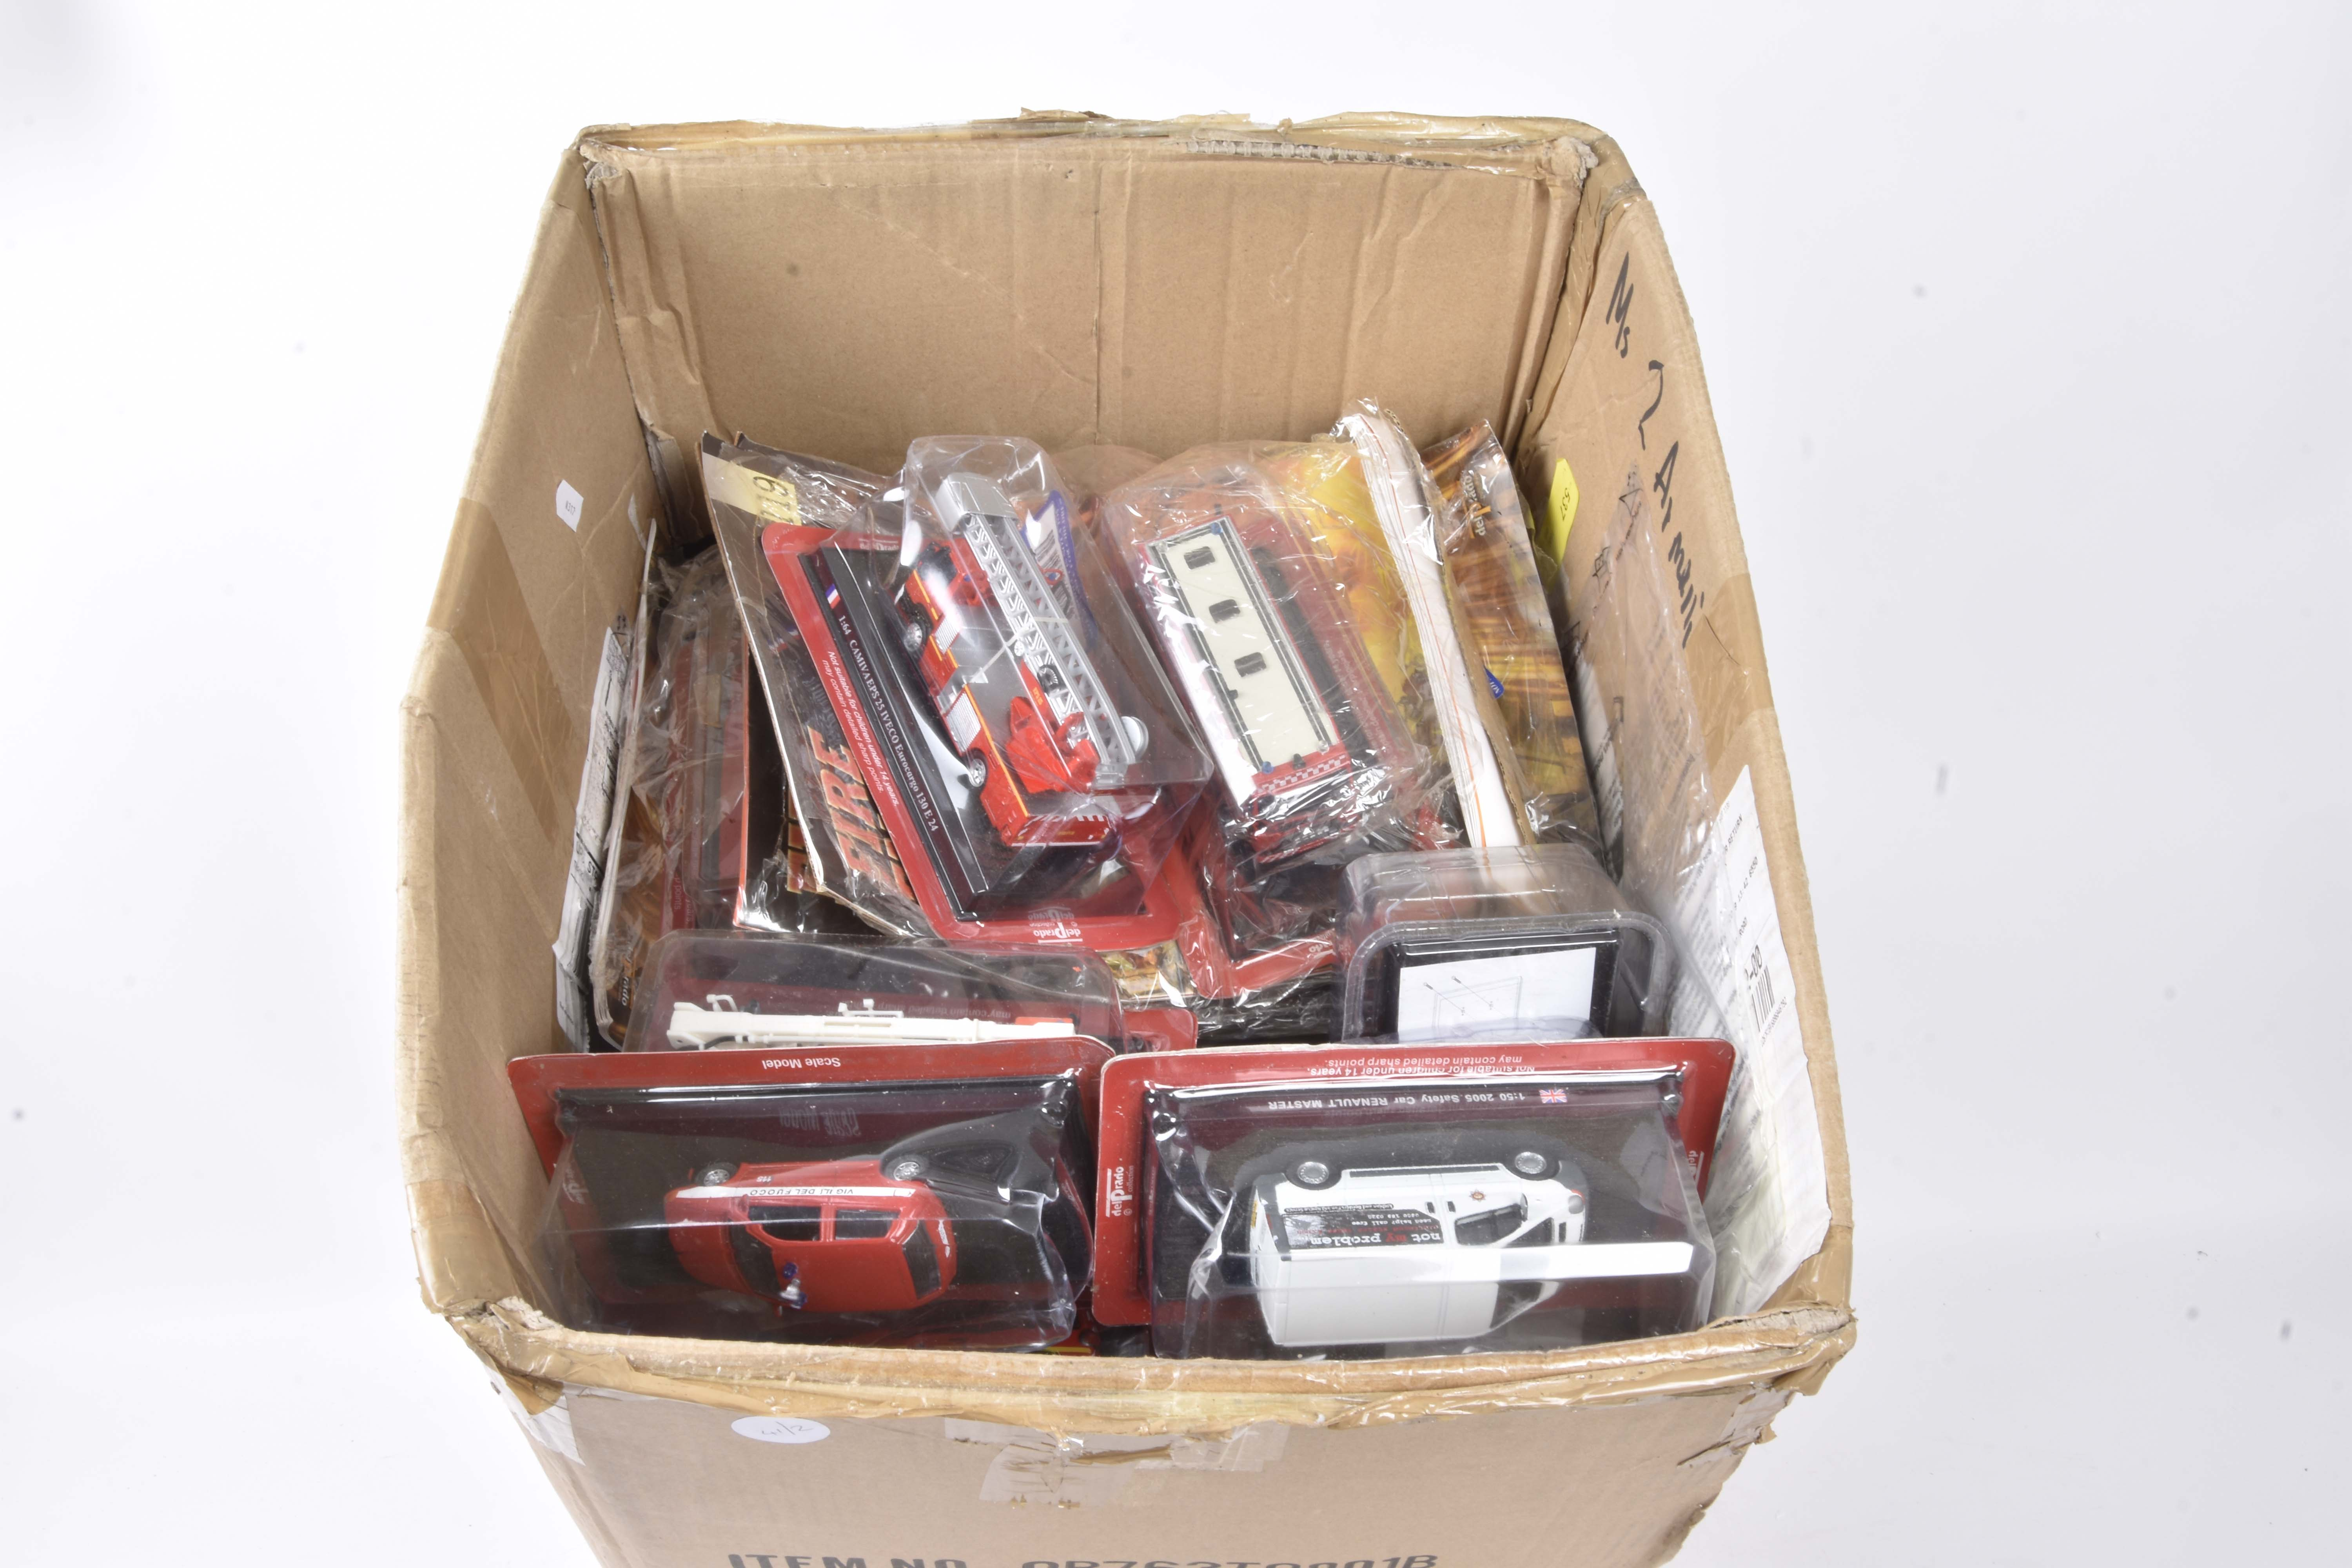 Modern Diecast Magazine Issues, a bubble packed collection some with literature by De Agostini/Del - Image 2 of 2